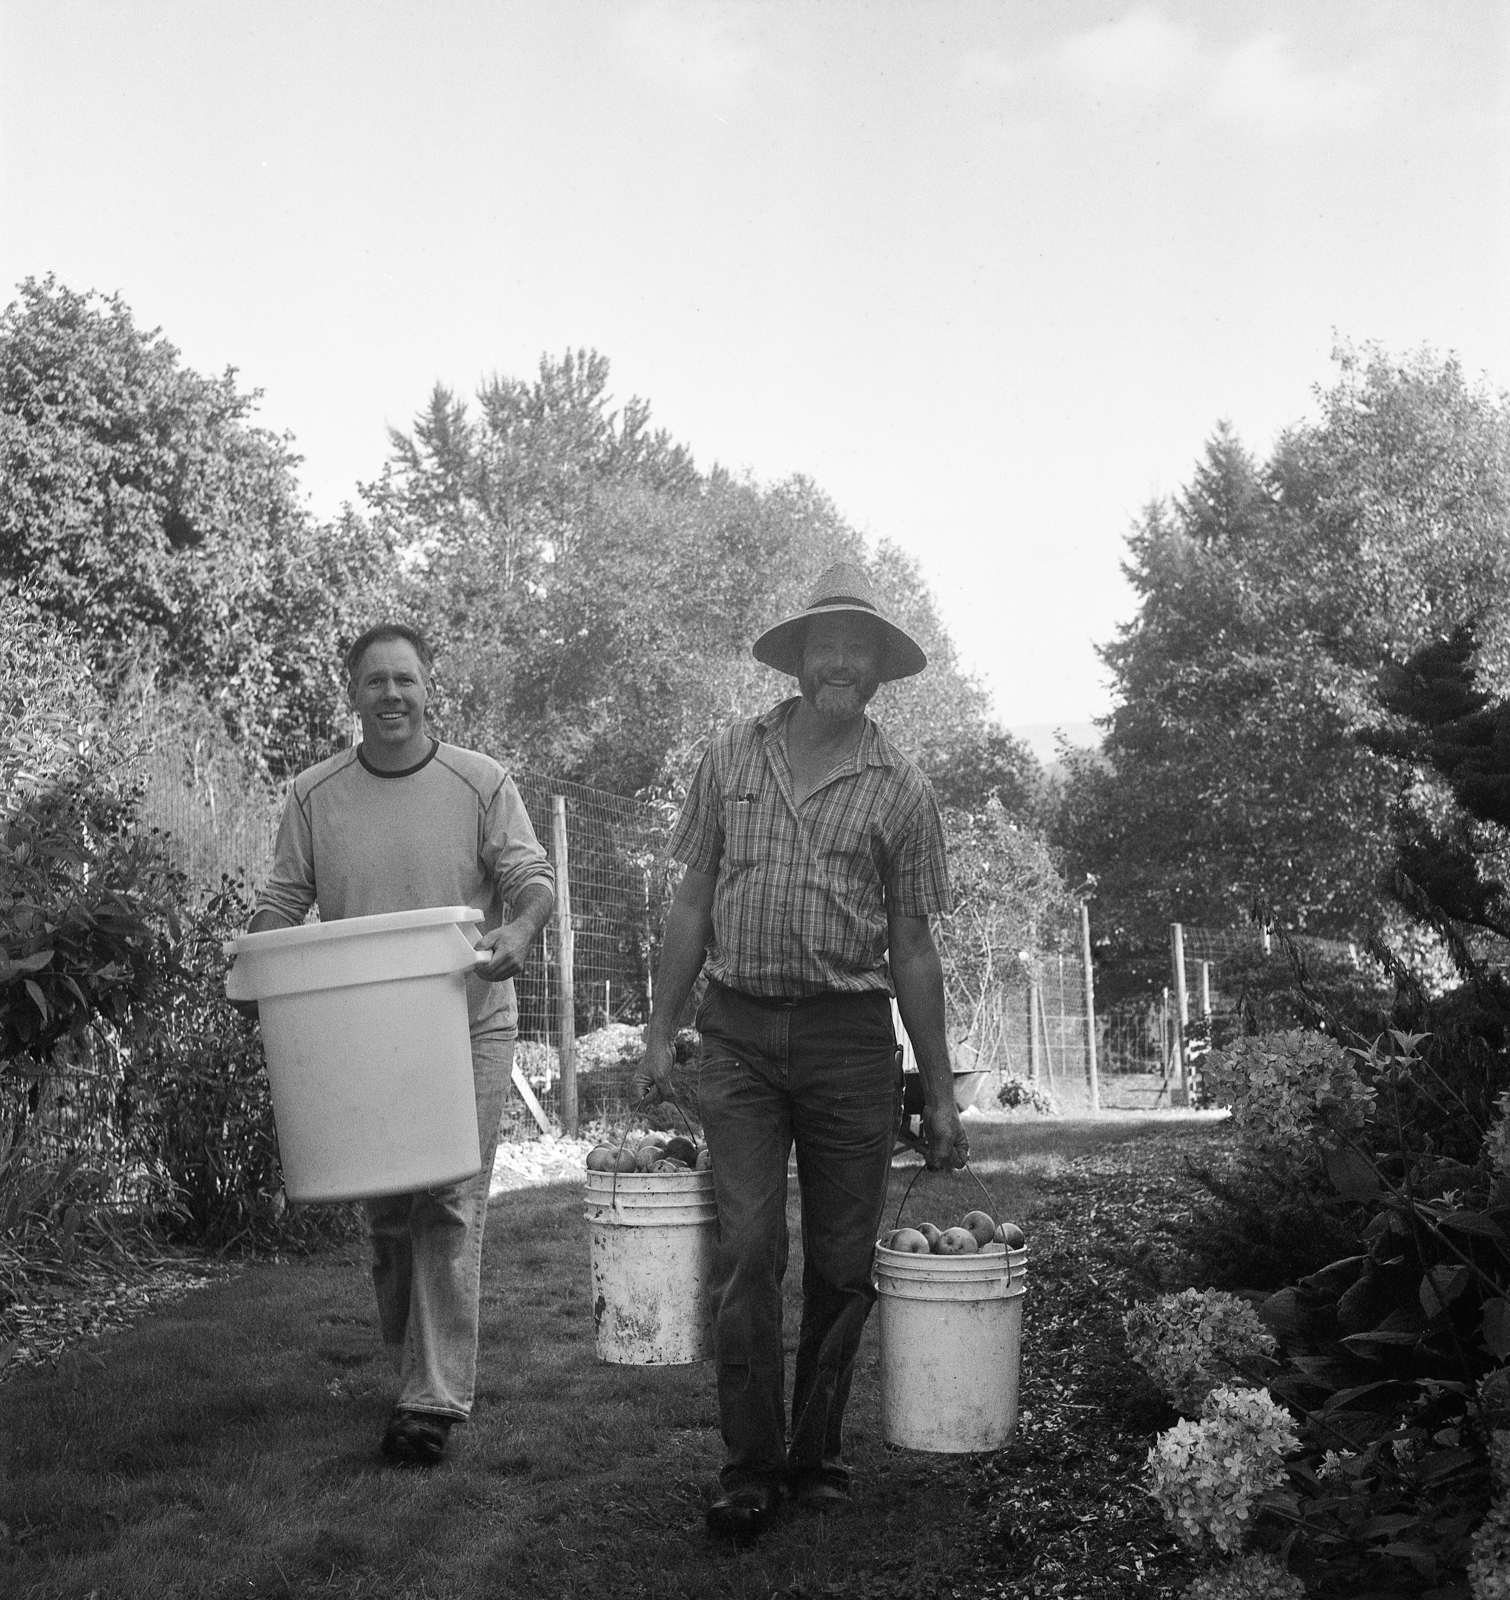 Simon Ewing's dad carrying apples during the community apple pressing event, 2011.